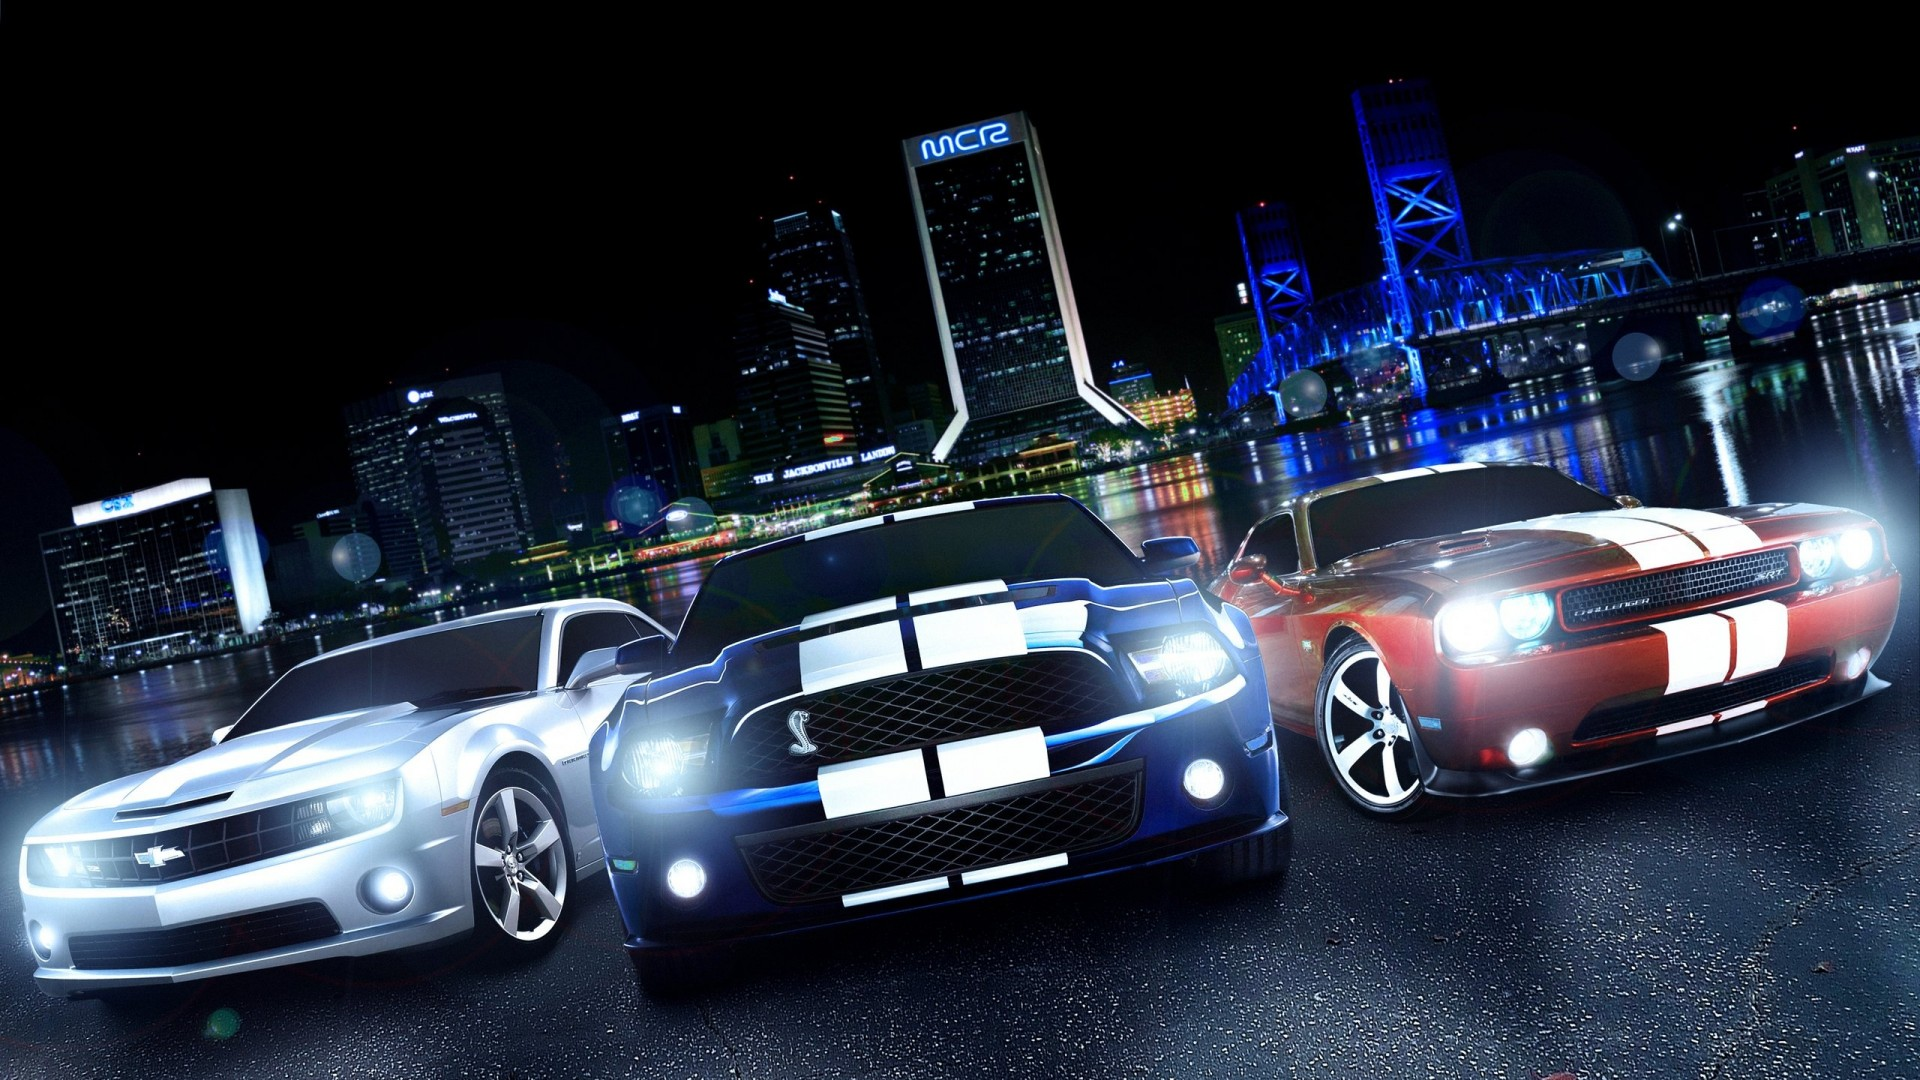 Cool Cars For Wallpapers